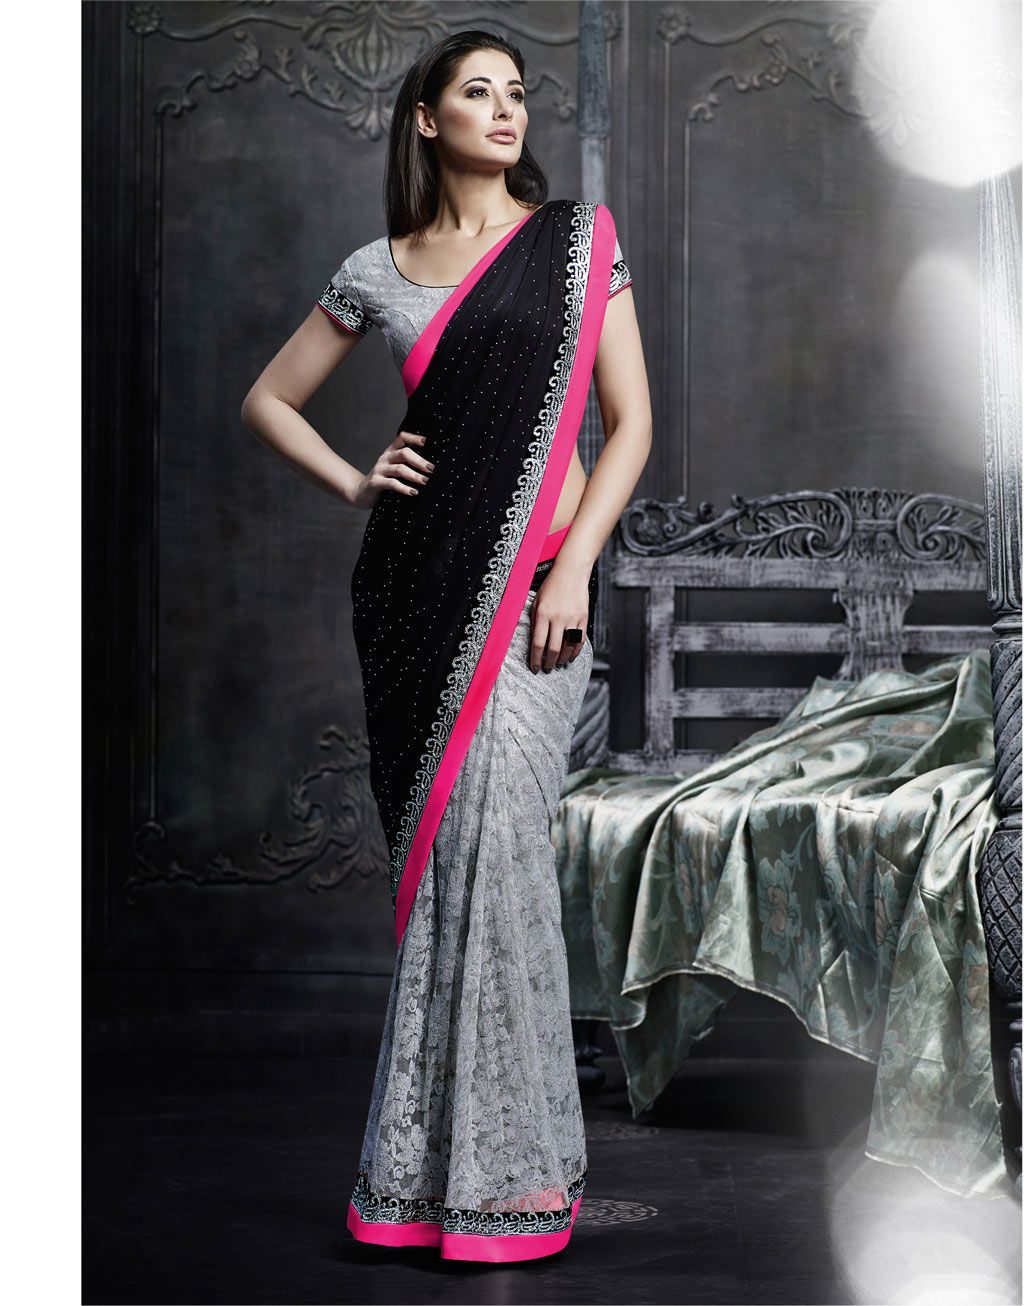 Retro style fashion saree nargis fakhri black satin party wear saree   indian feminity